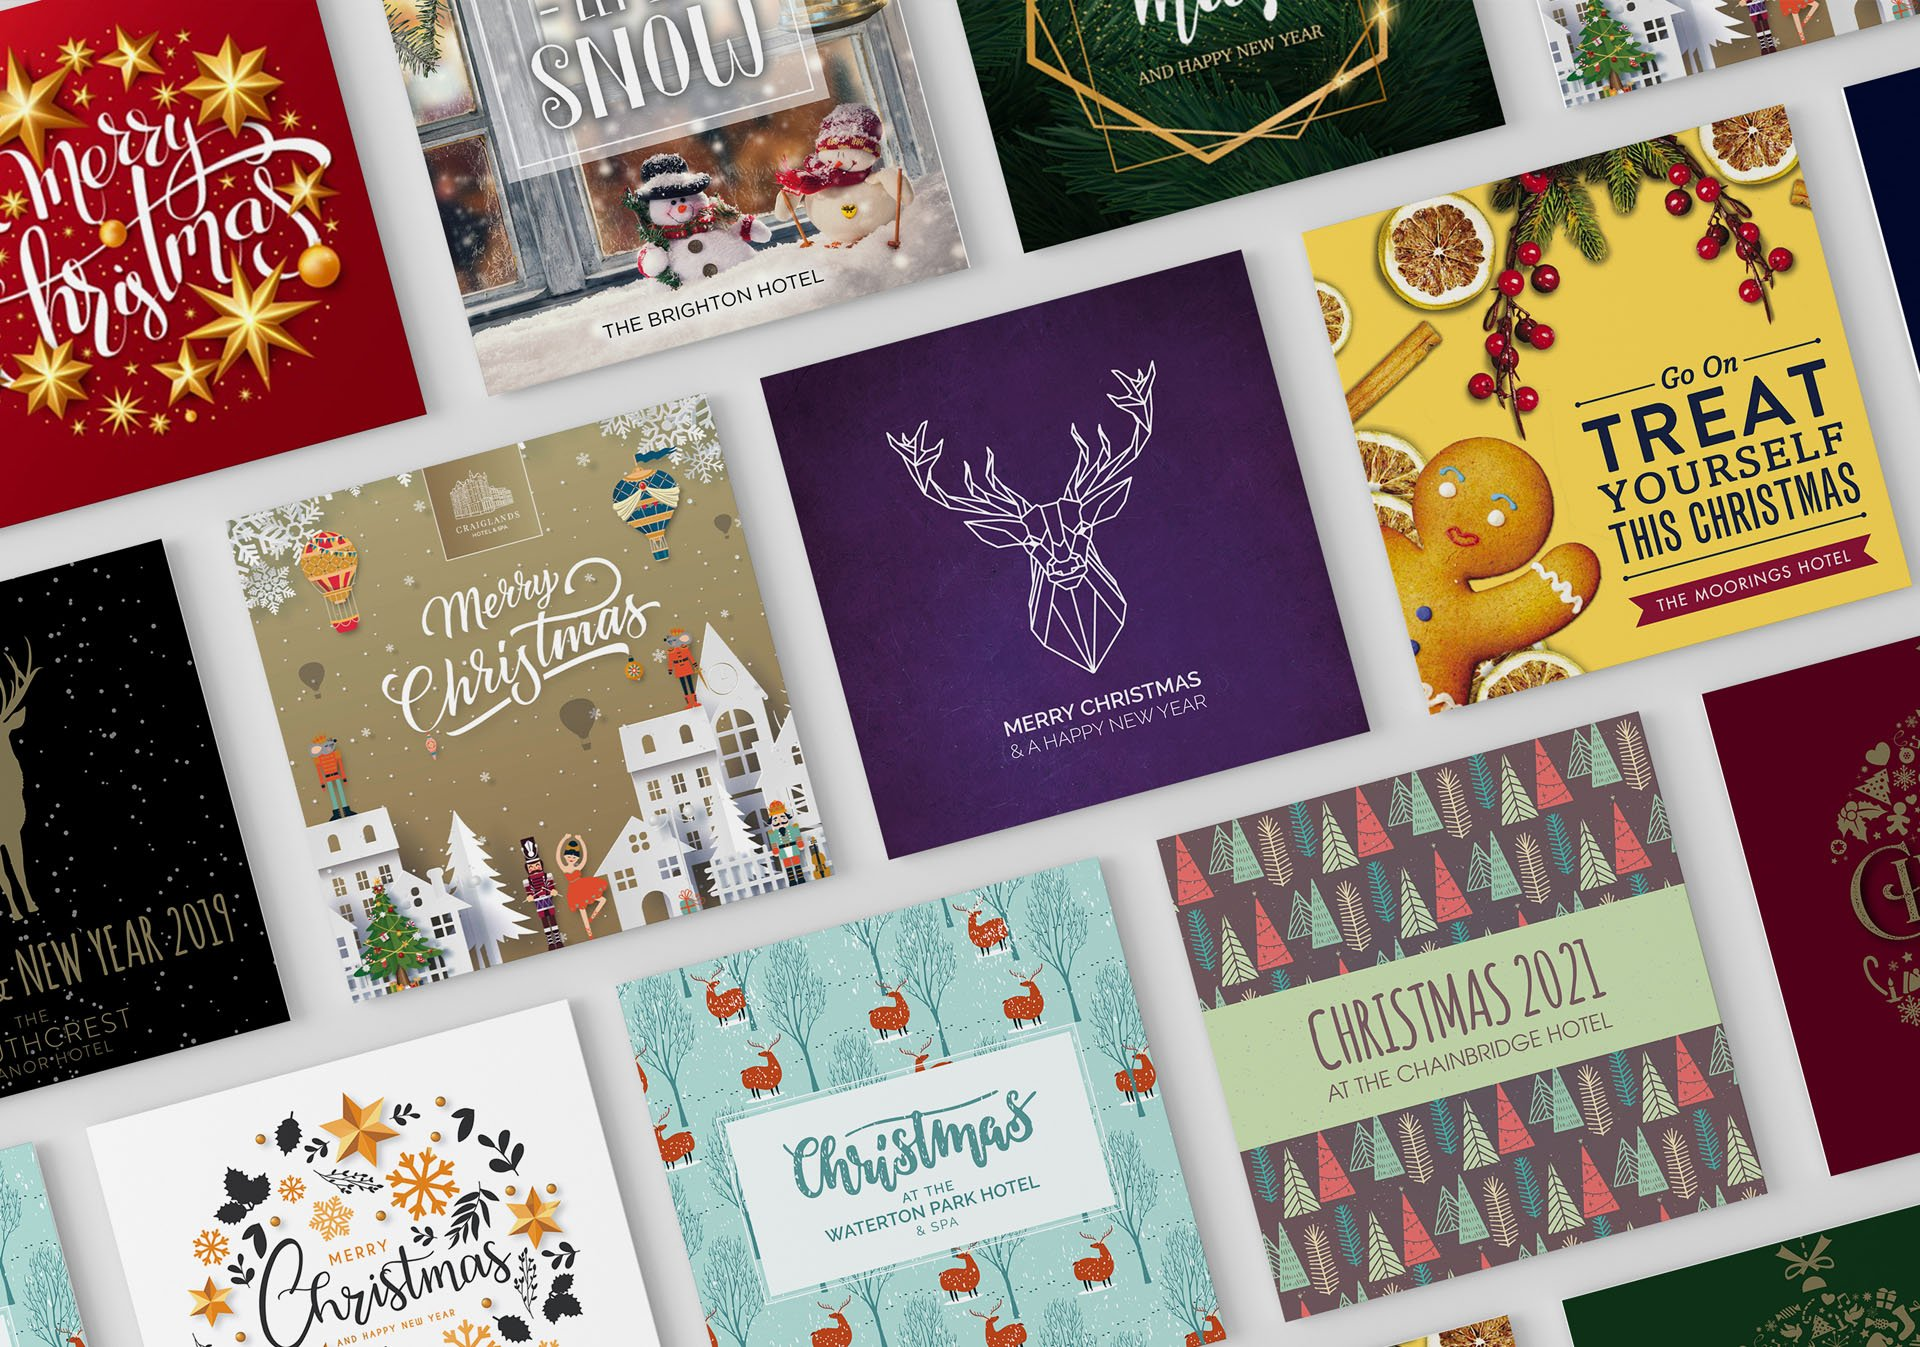 Hotel Christmas Card & Brochure Design